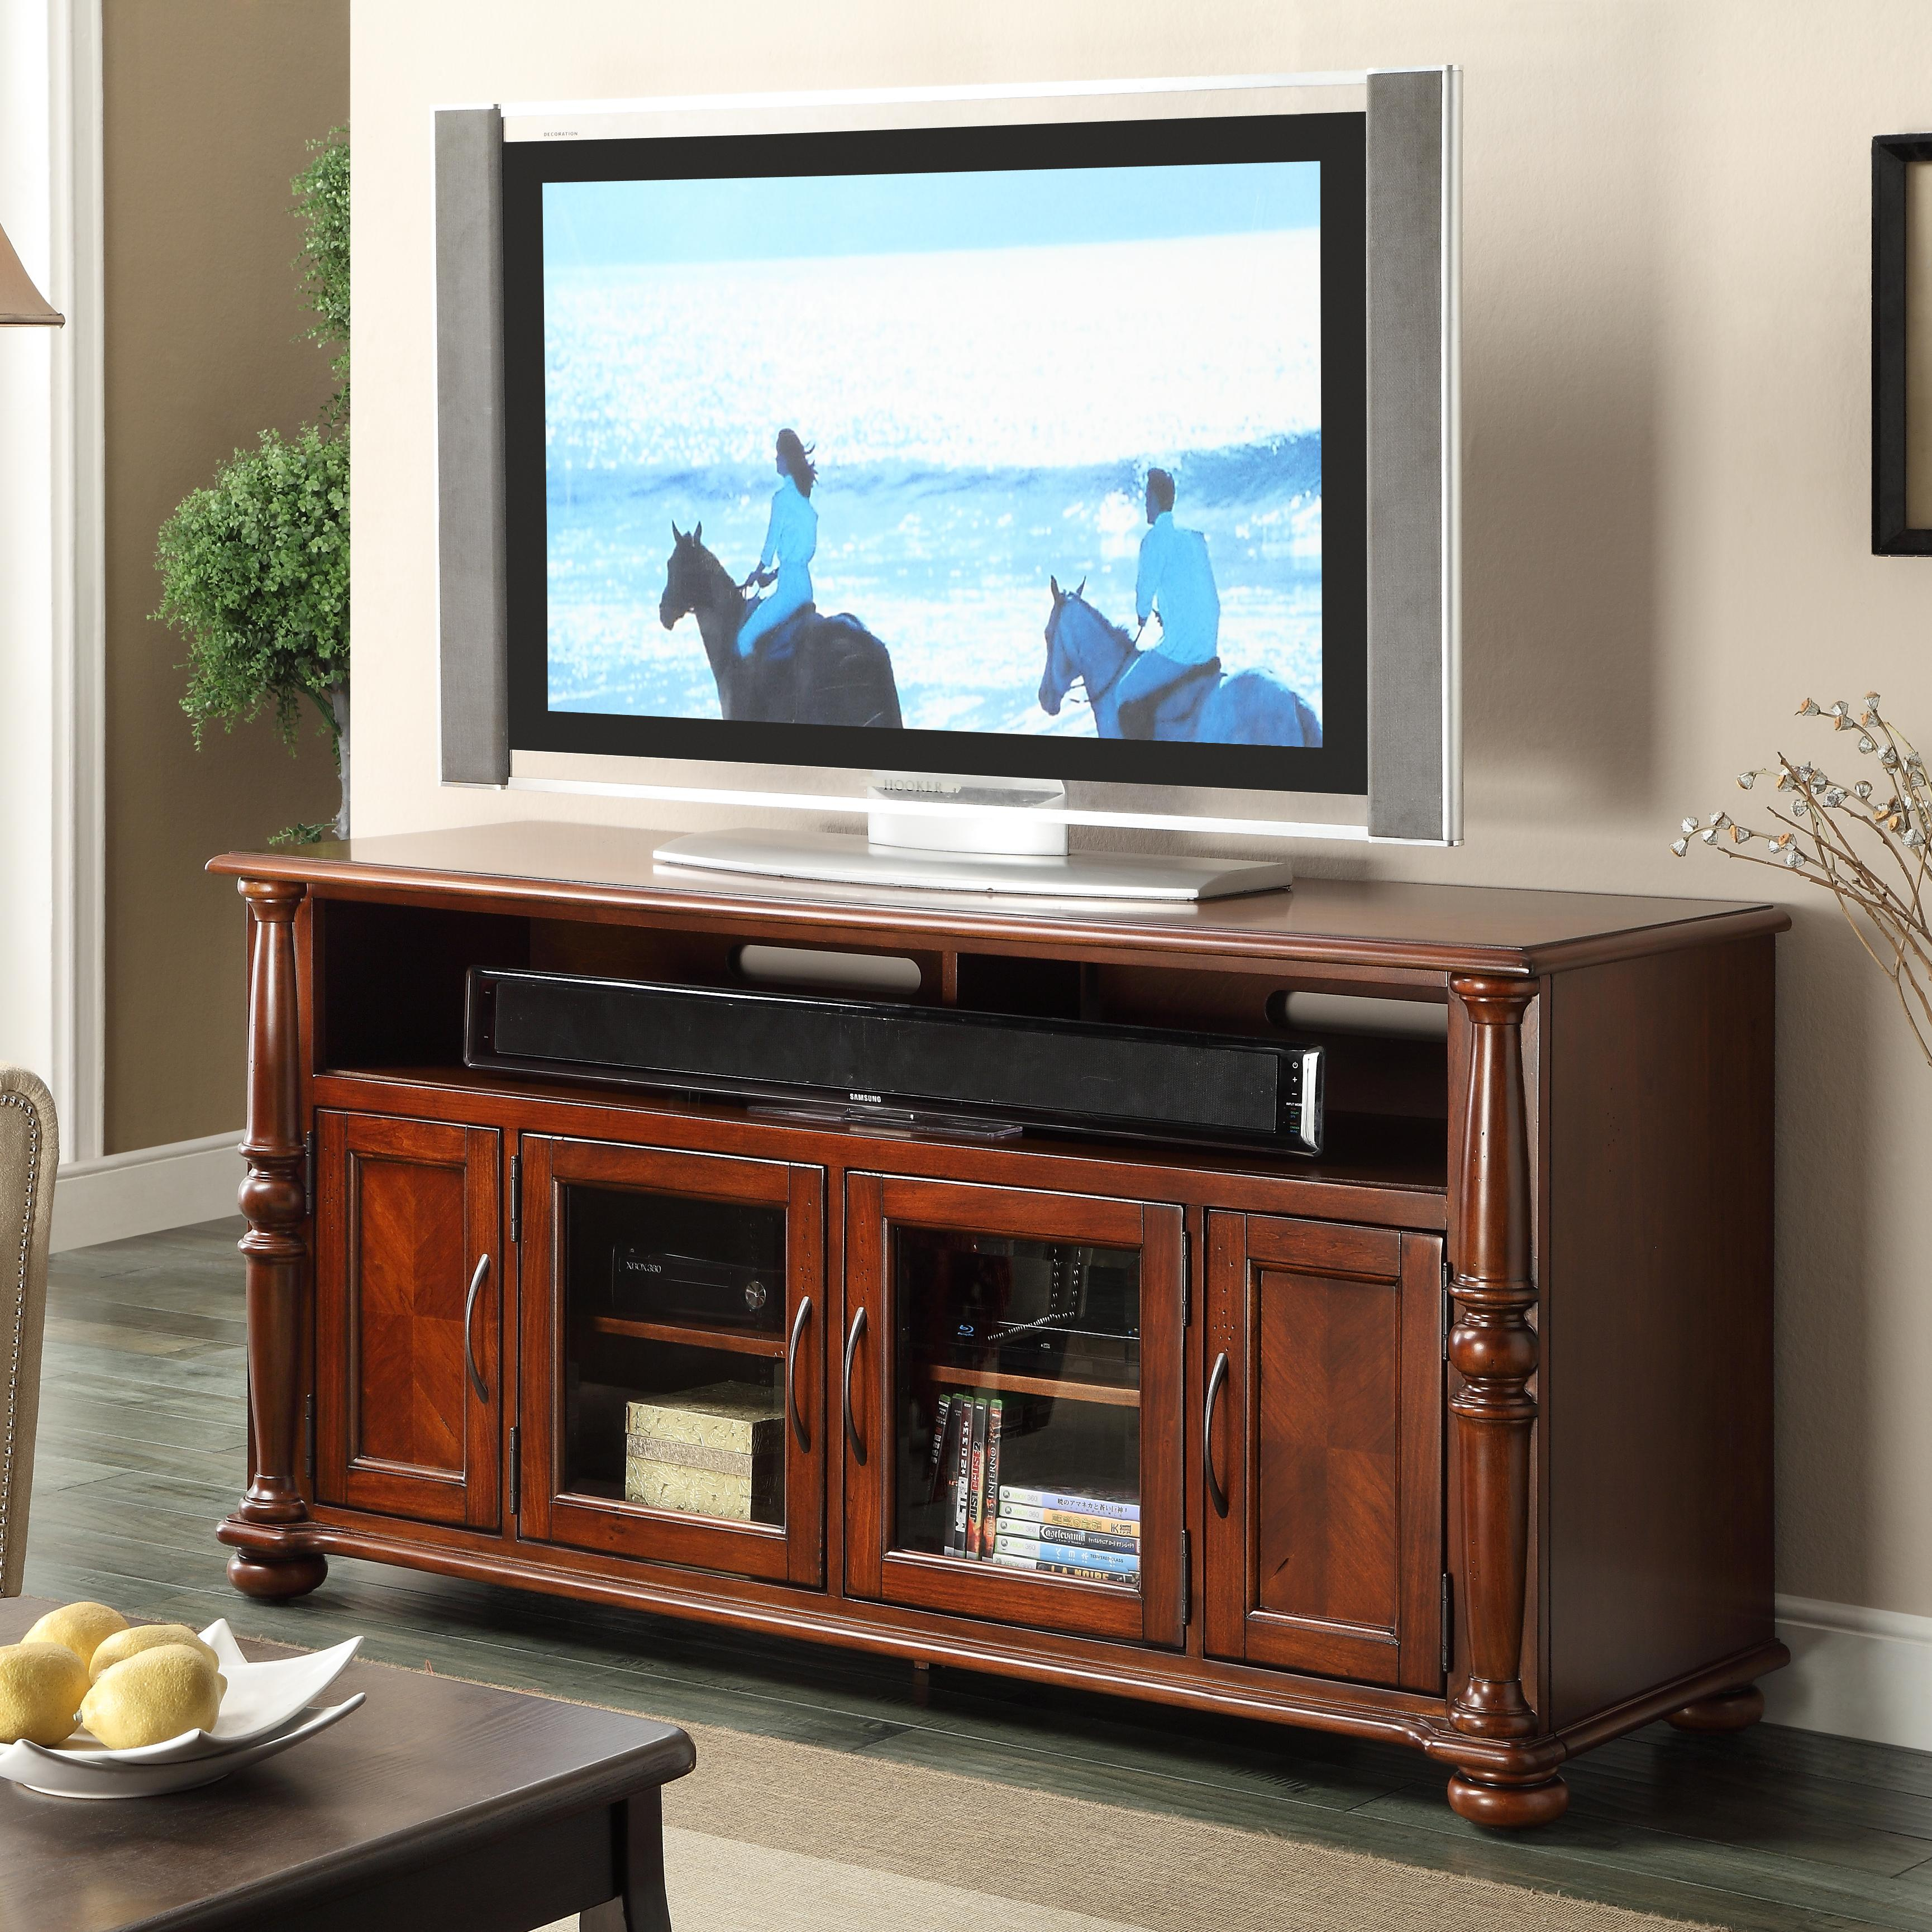 Riverside Furniture Dunmore 60 Inch Tv Console With 2 Glass Doors  # C Discount Meuble Tv